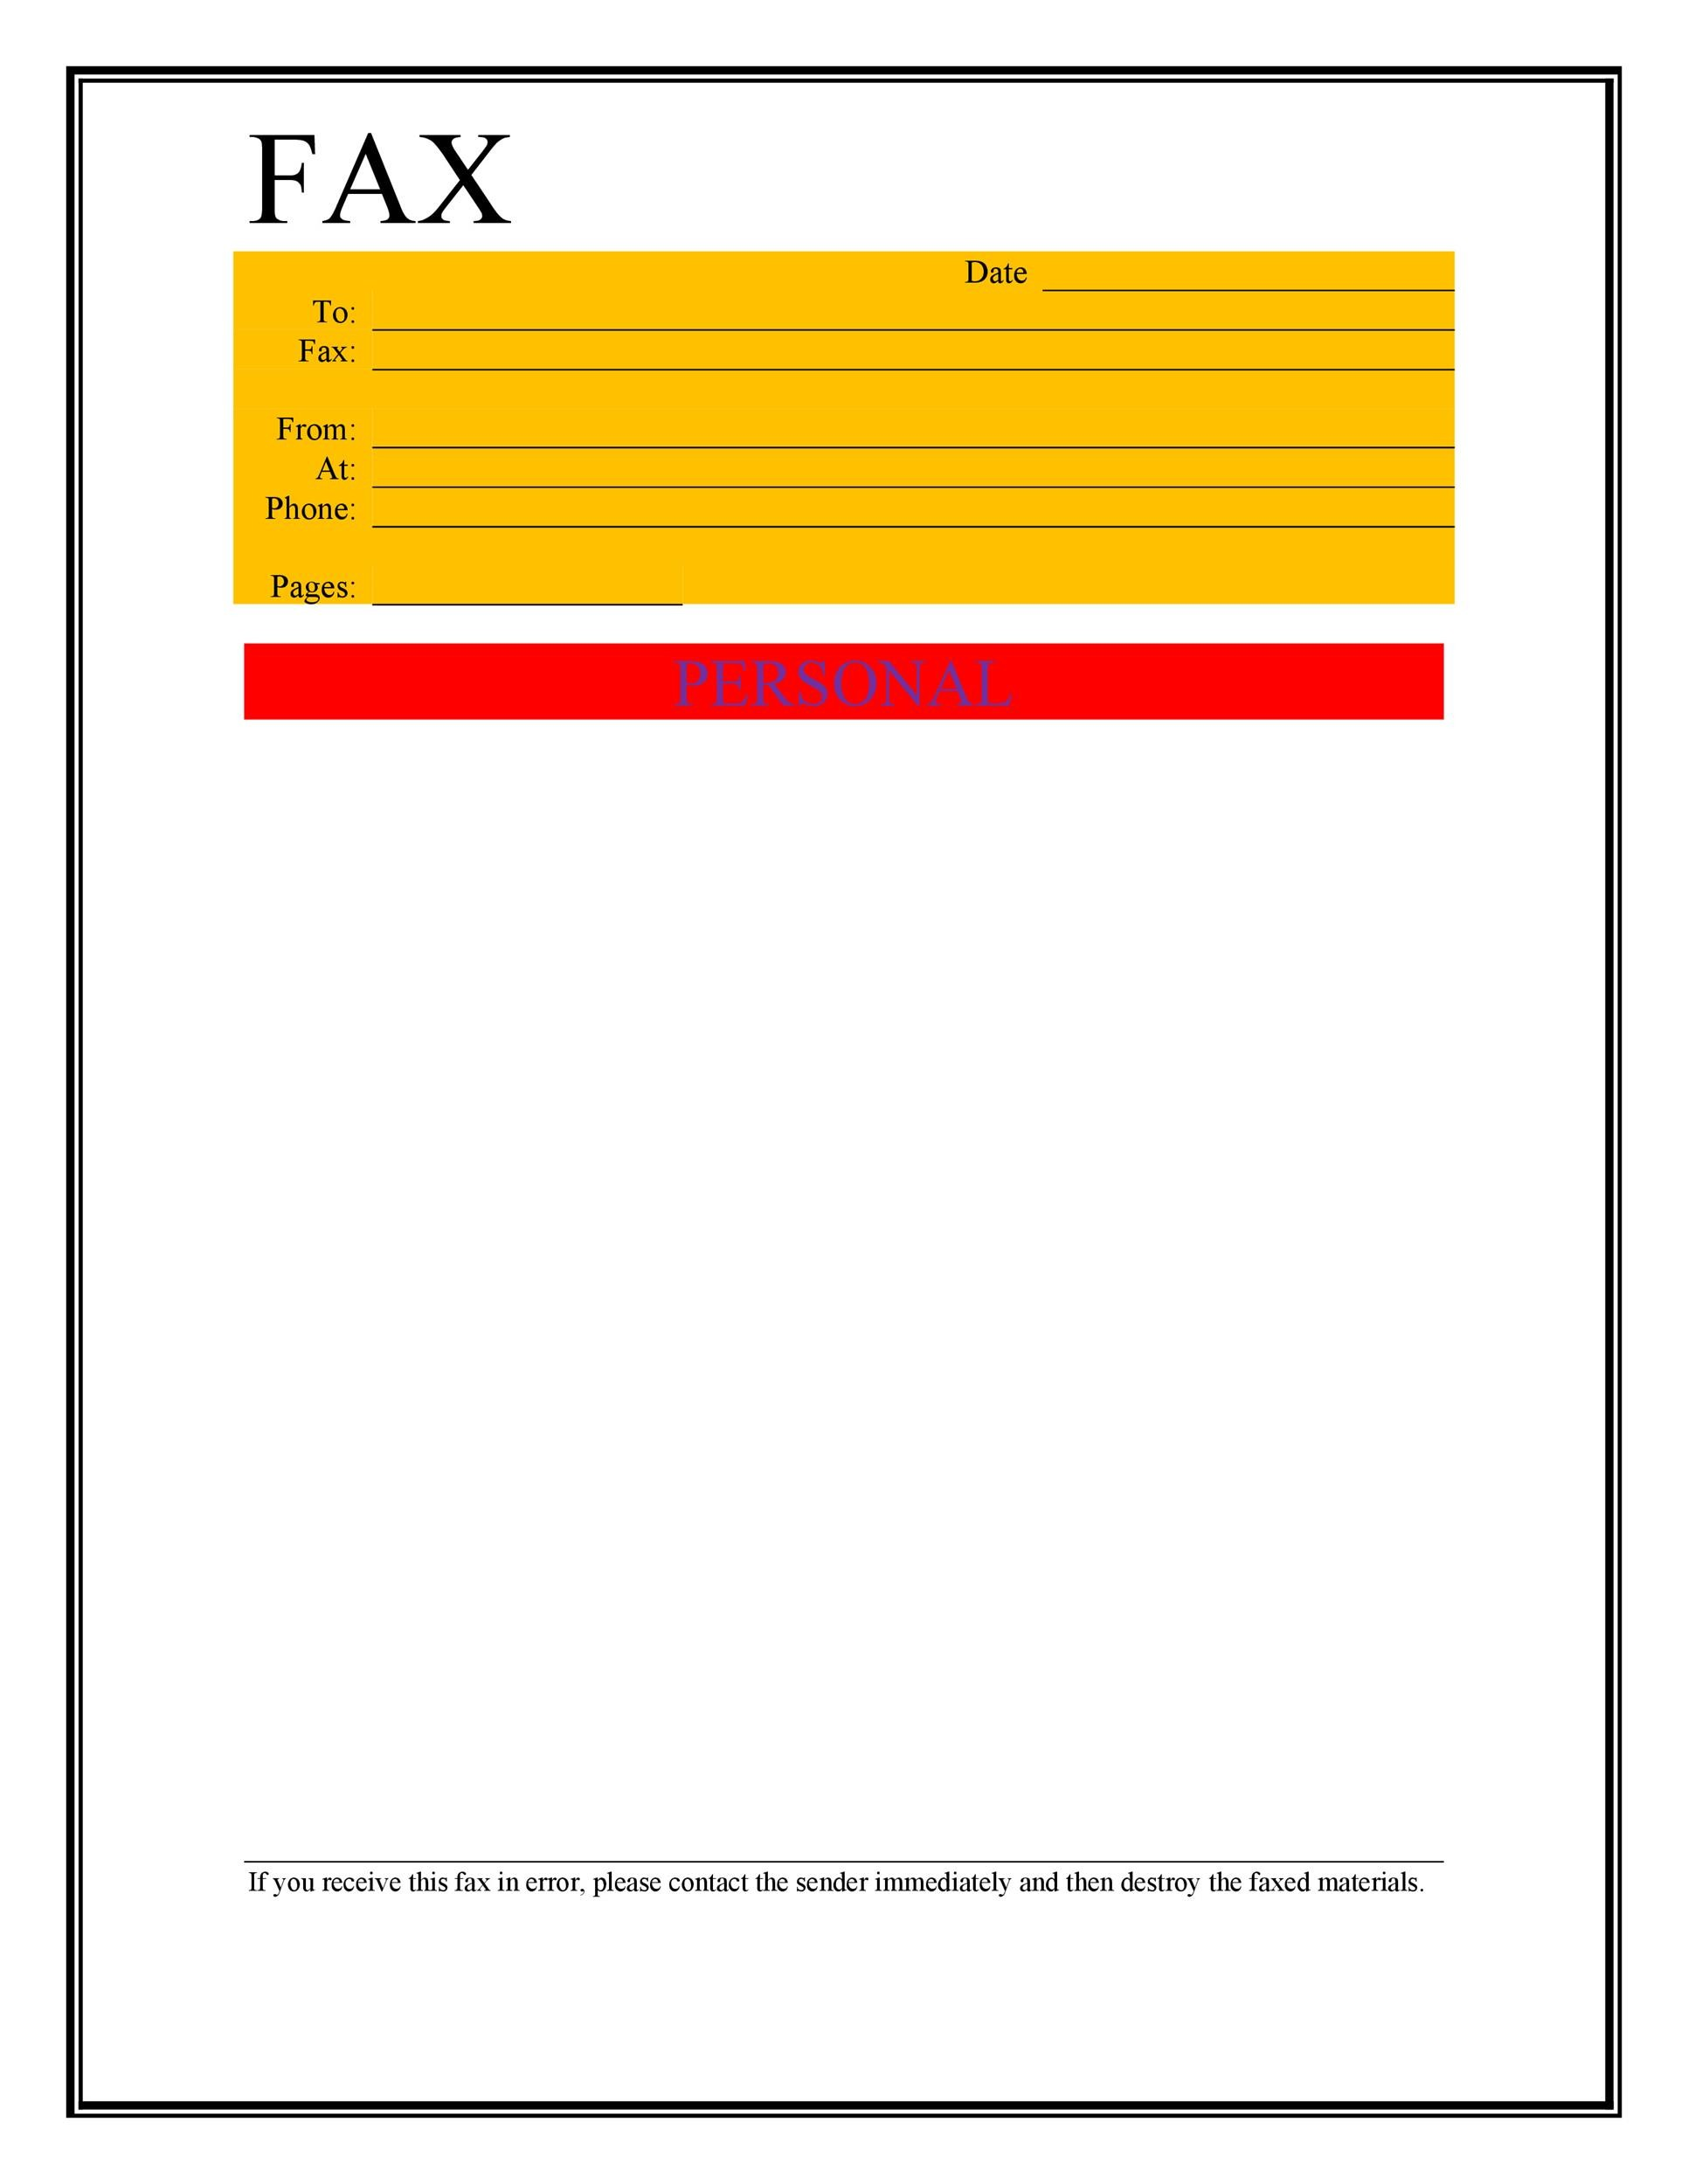 40 Printable Fax Cover Sheet Templates - Template Lab - Fax Cover Sheets Free Printable